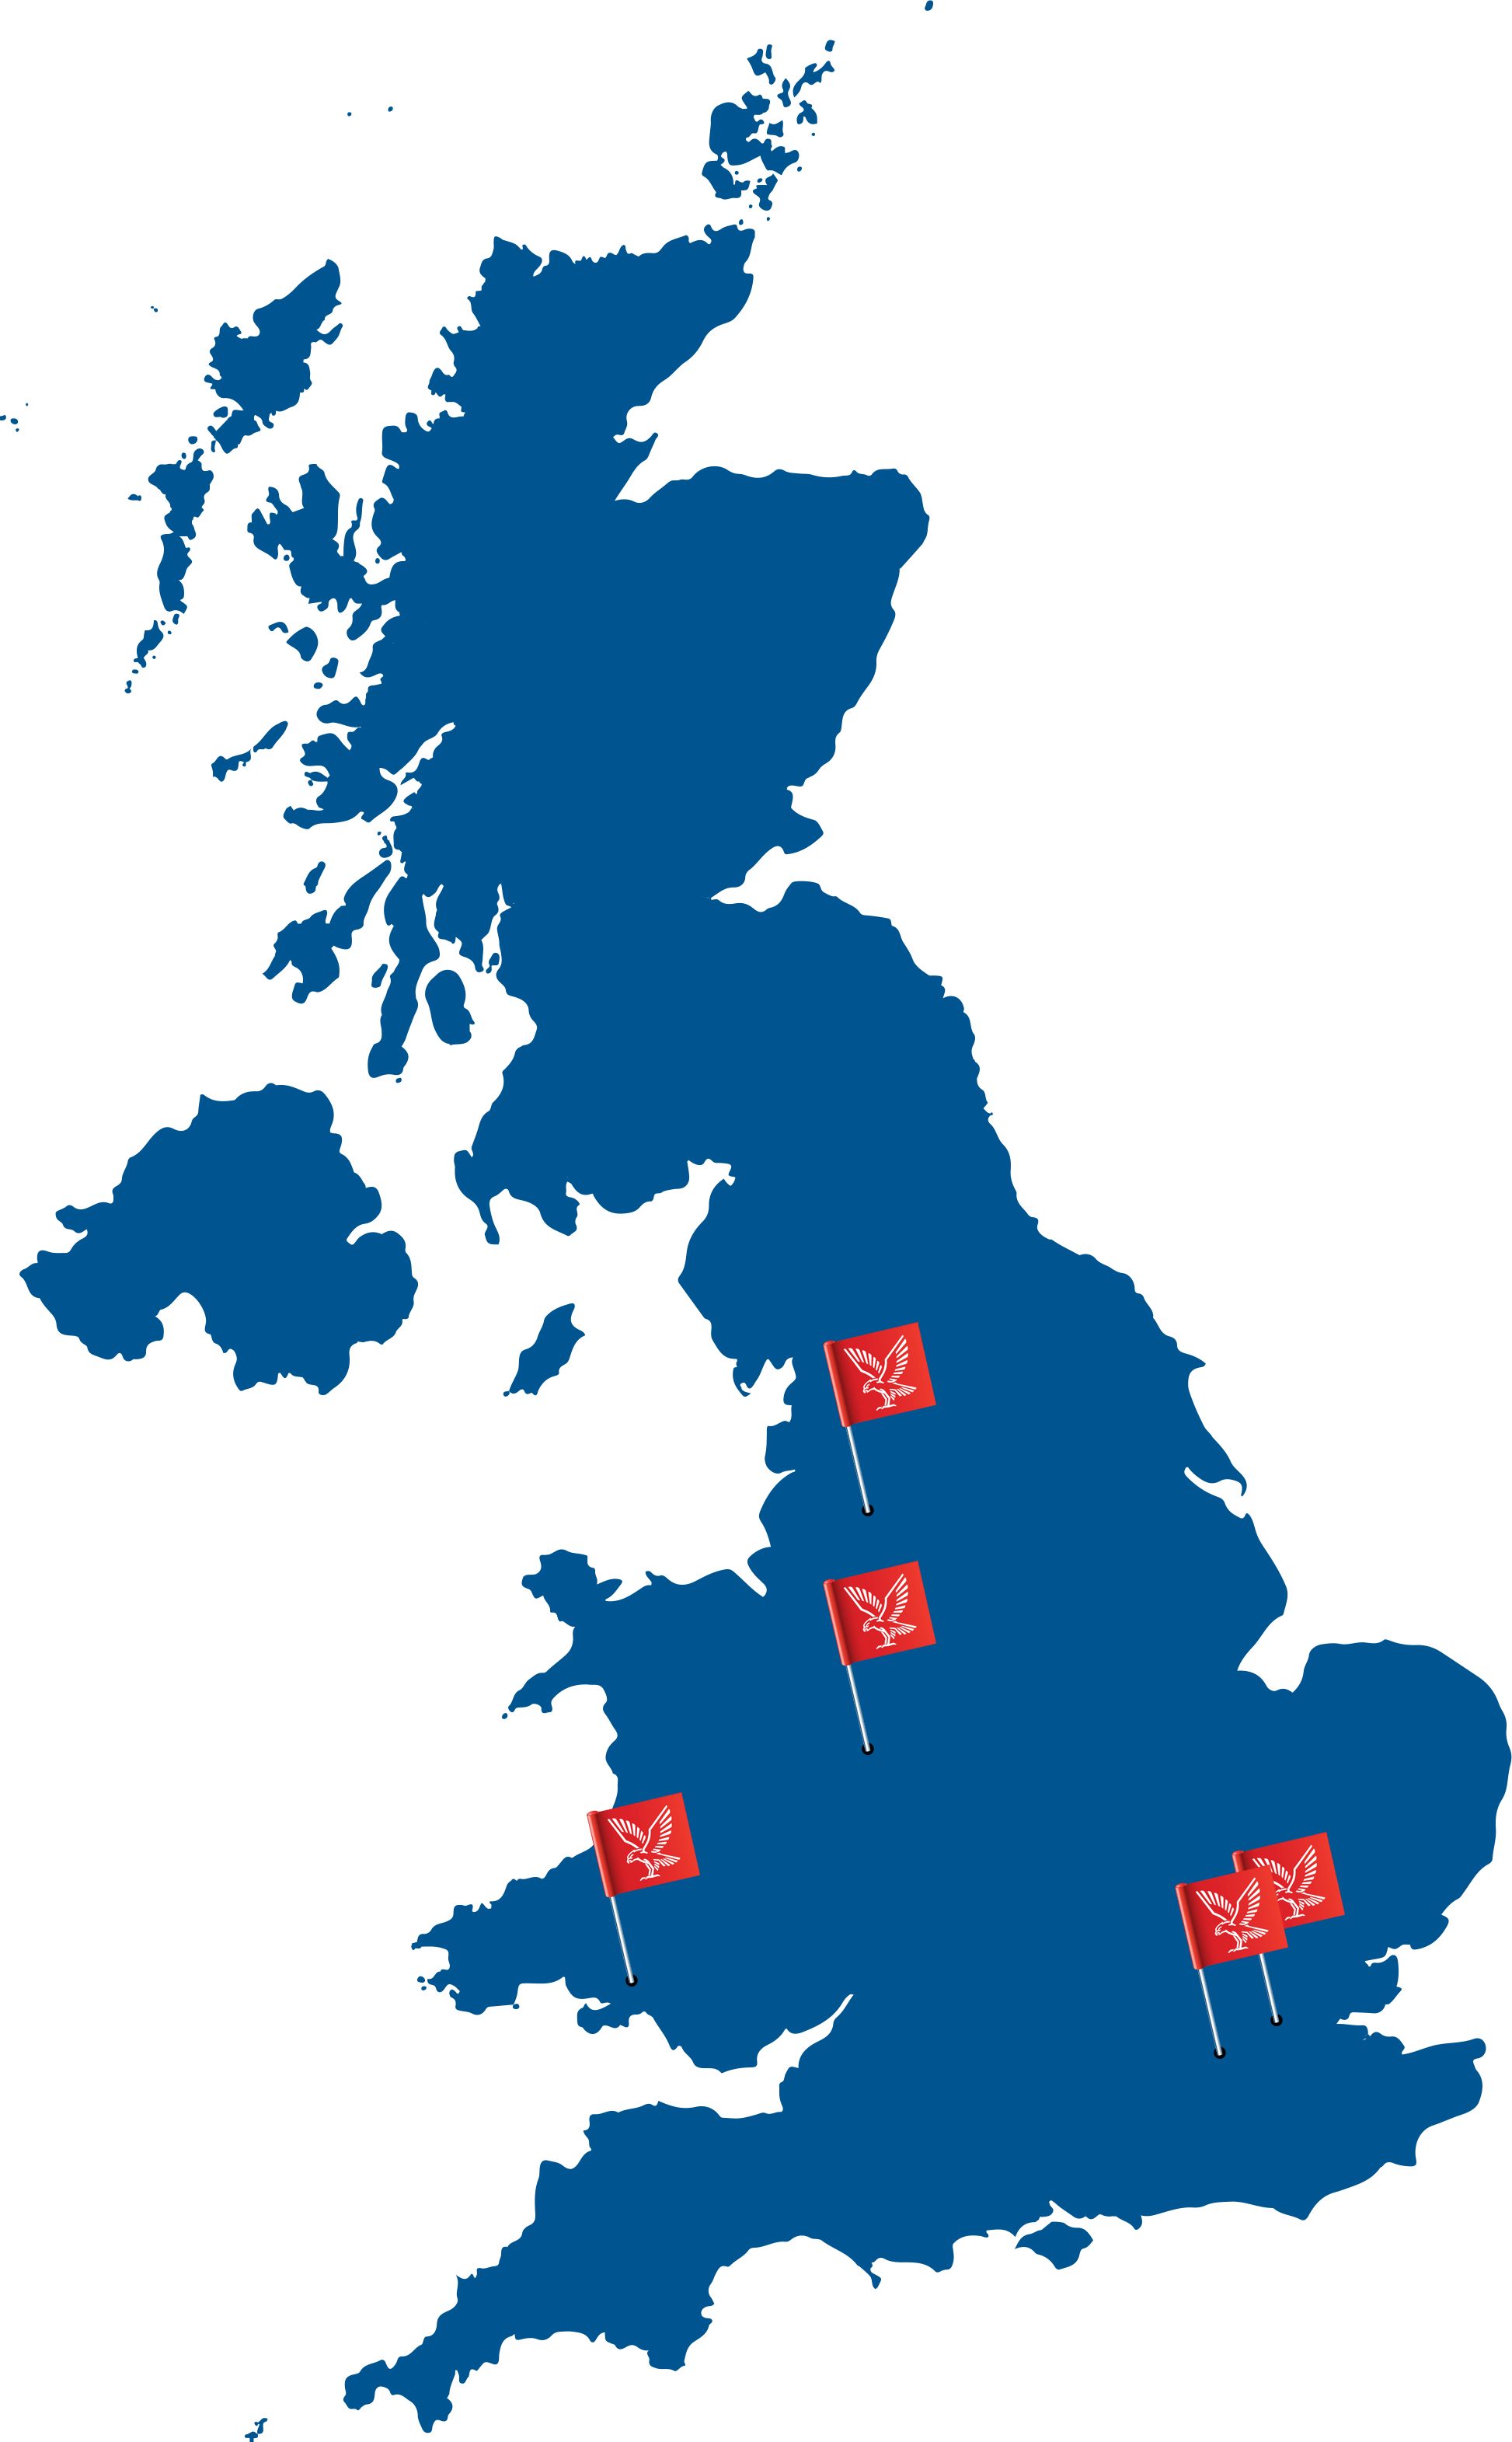 Falck locations in the UK